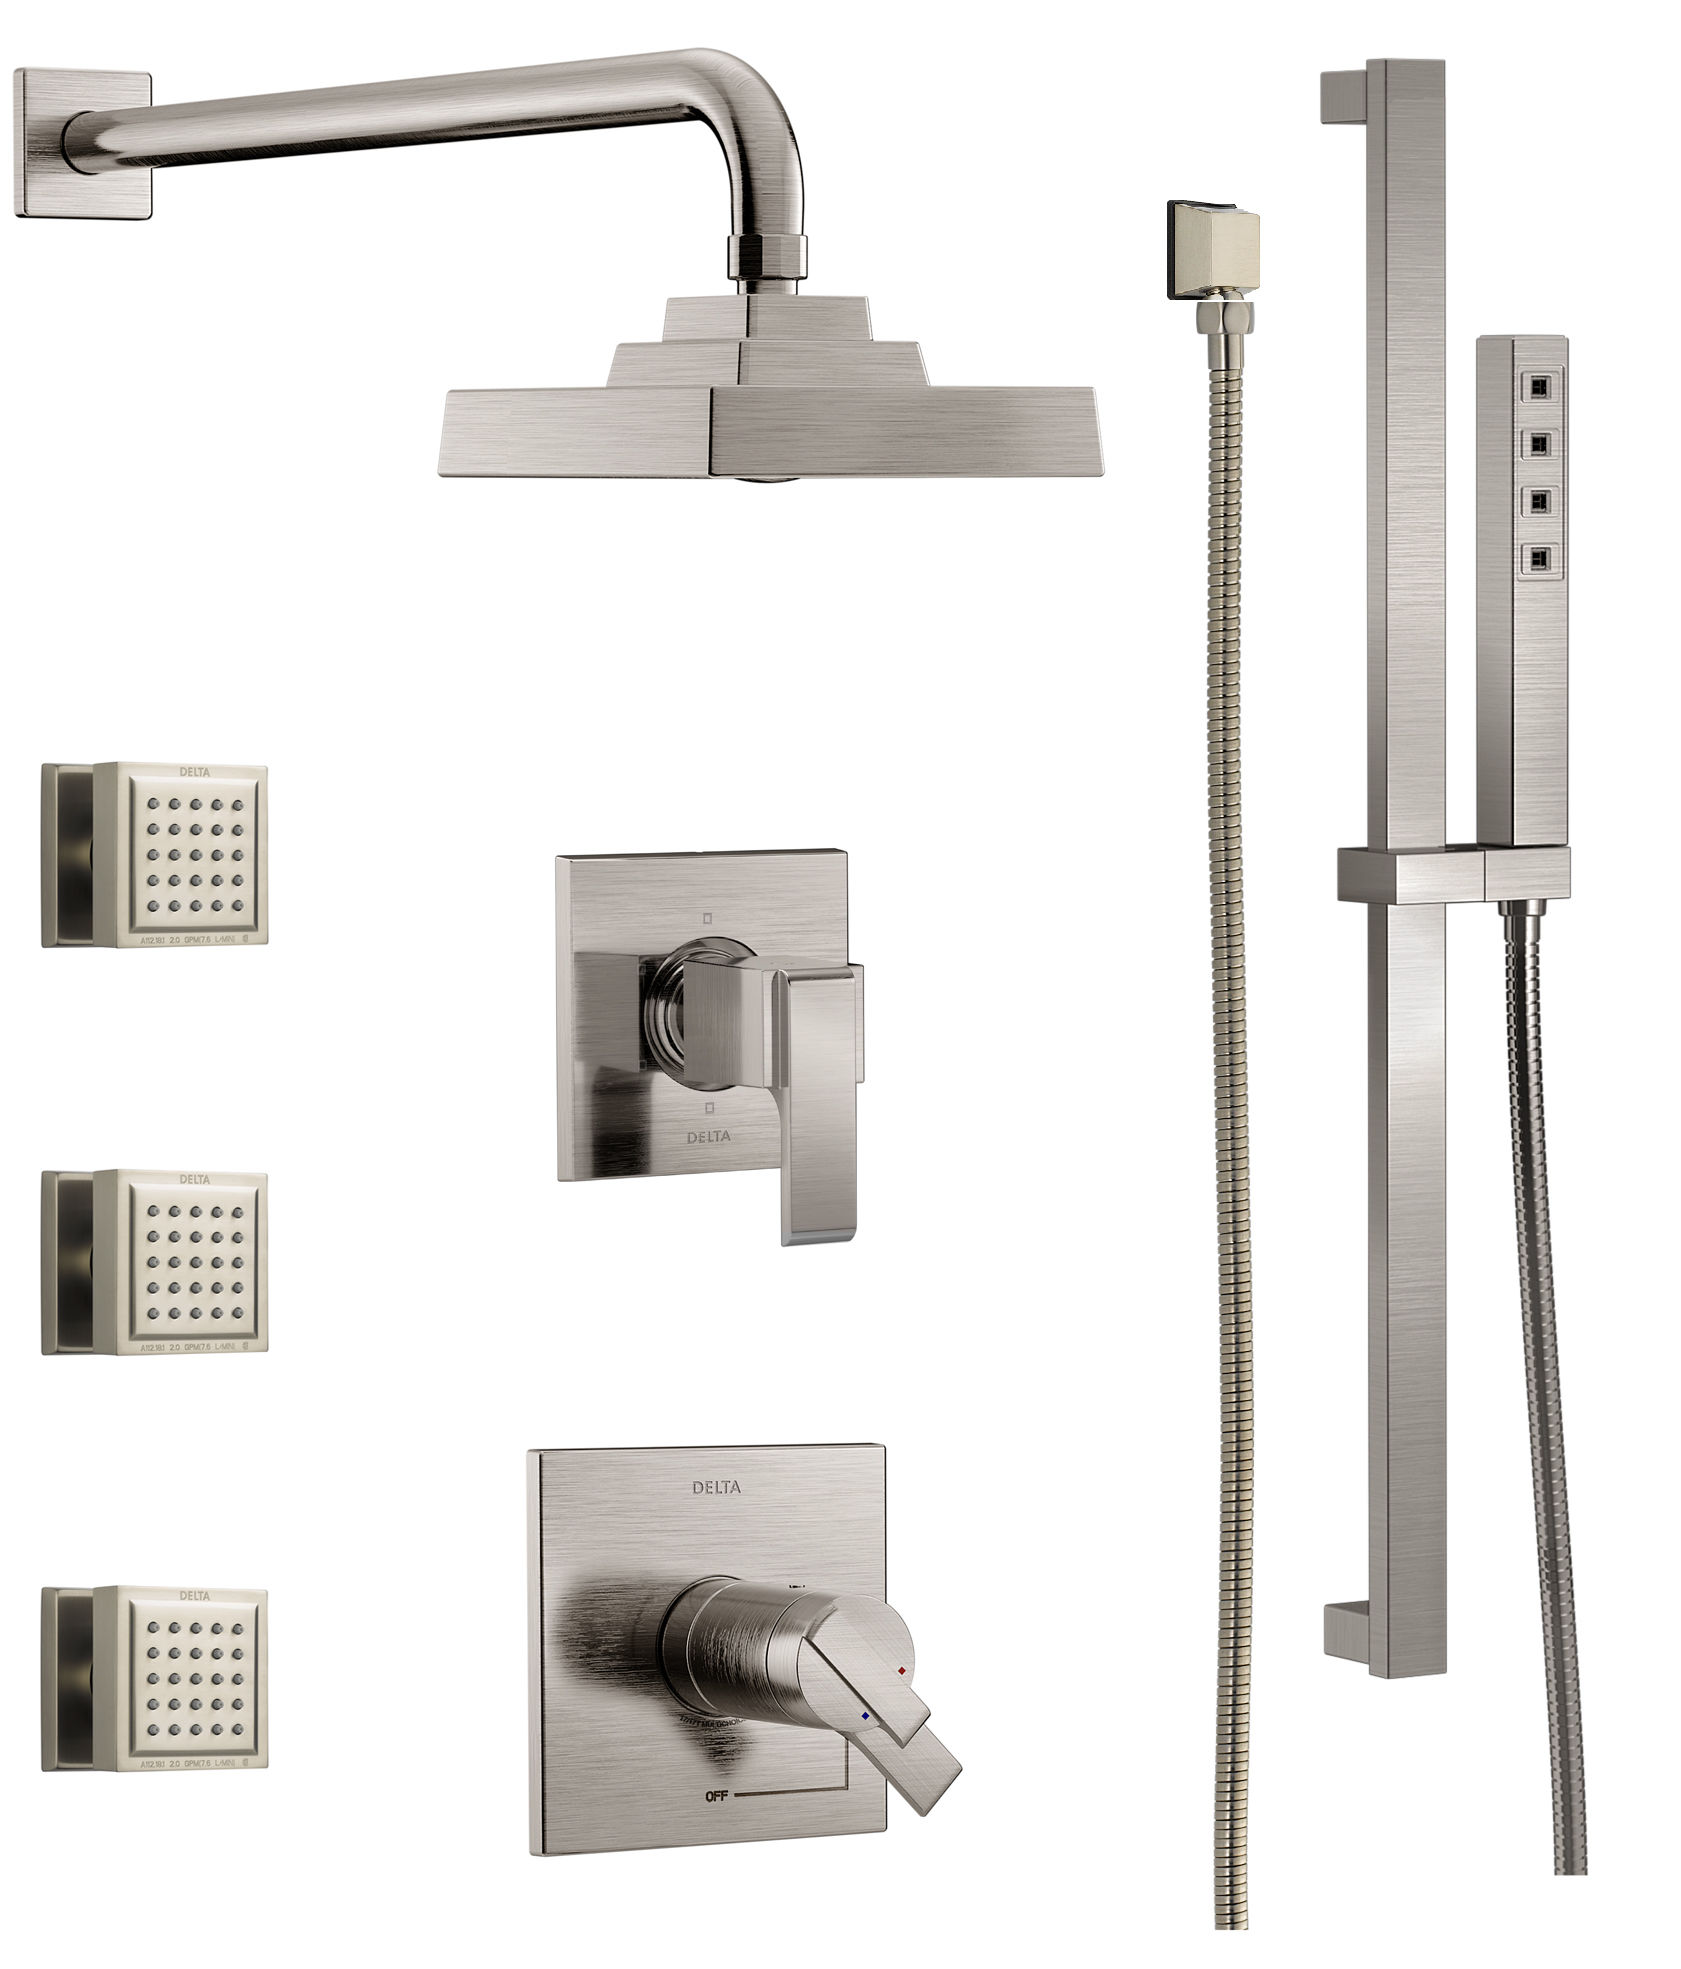 Delta DSS Ara 17T03 Chrome TempAssure 17T Series Thermostatic Shower System  With Integrated Volume Control, Shower Head, 3 Body Sprays And Hand Shower  ...